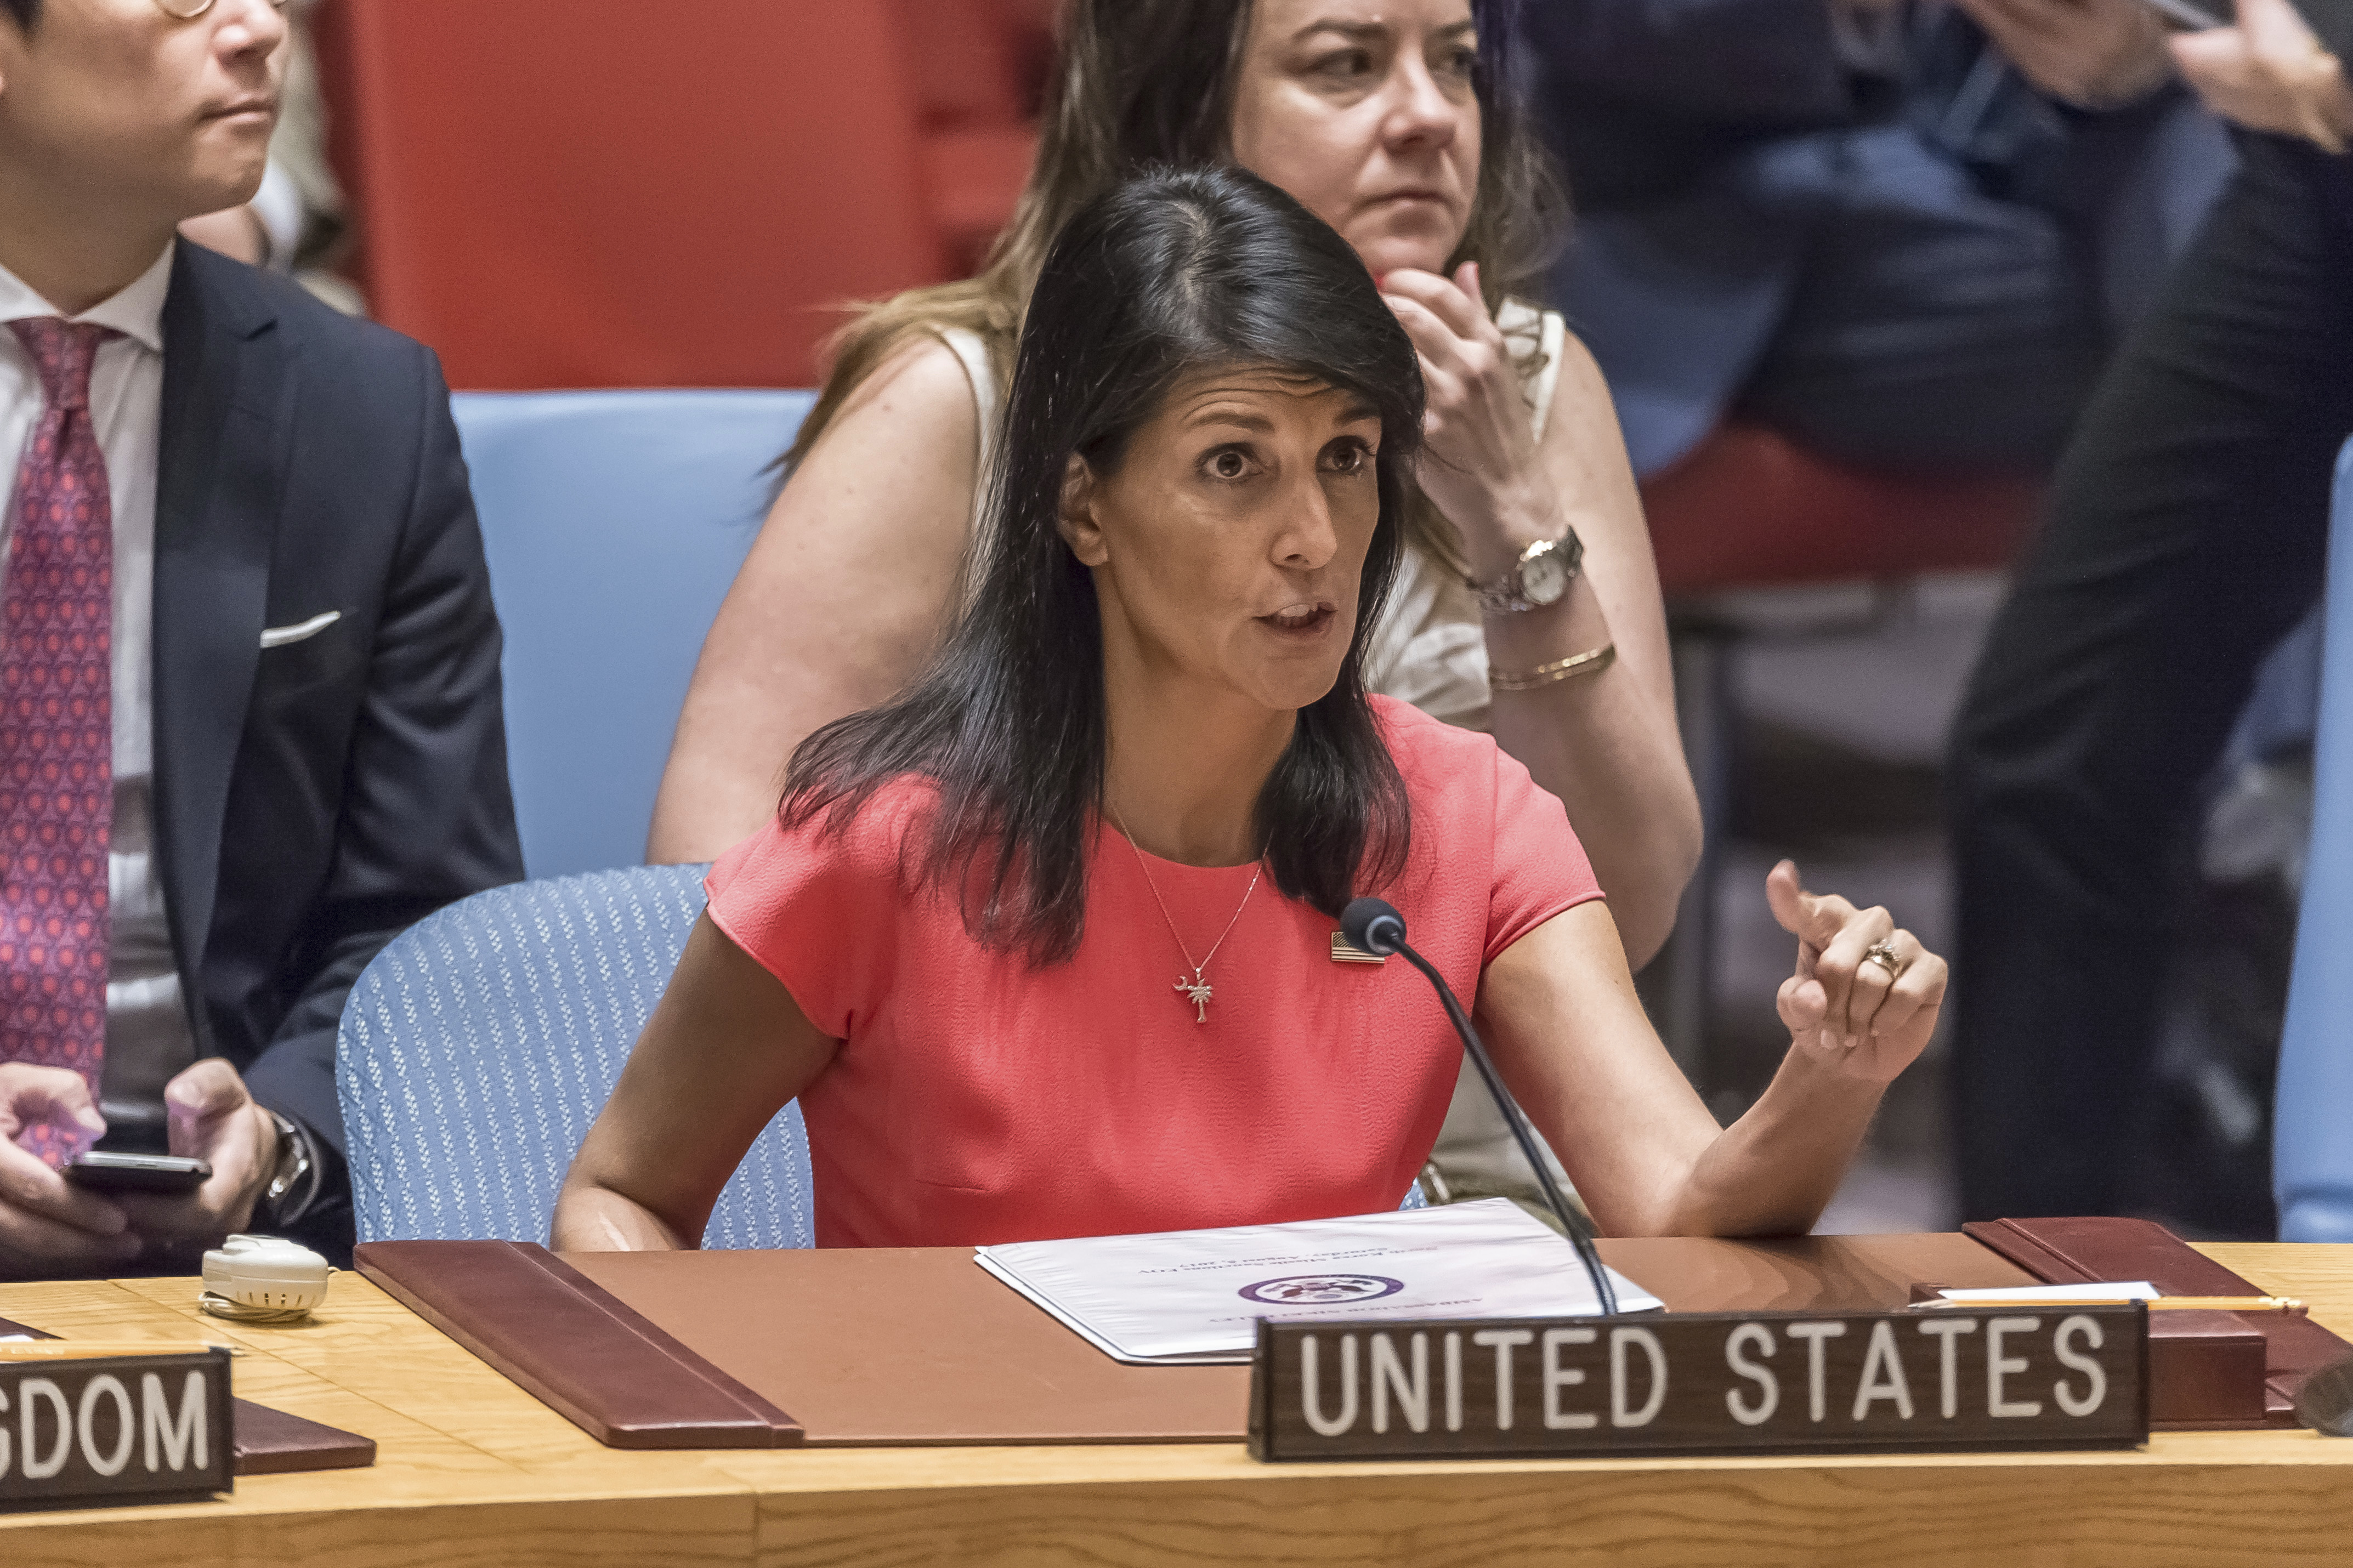 U.S. Ambassador to the UN Nikki Haley is seen during a meeting of the UN Security Council at UN Headquarters in New York, NY, USA on August 5, 2017.